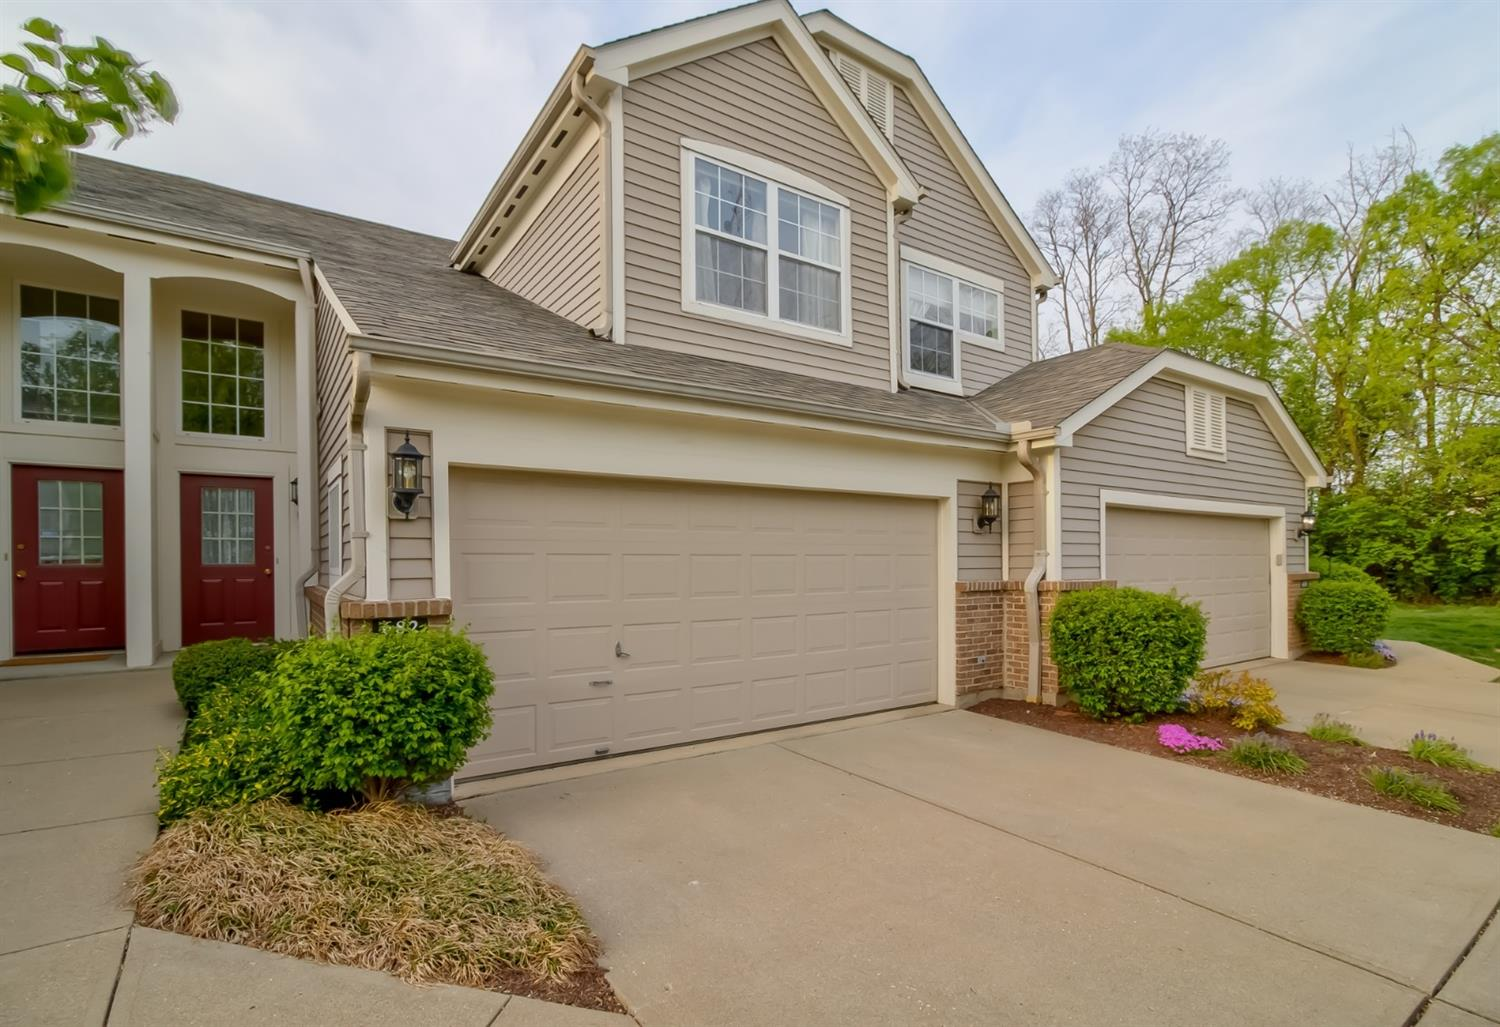 Property for sale at 682 Bridle Path, Springfield Twp.,  Ohio 45231